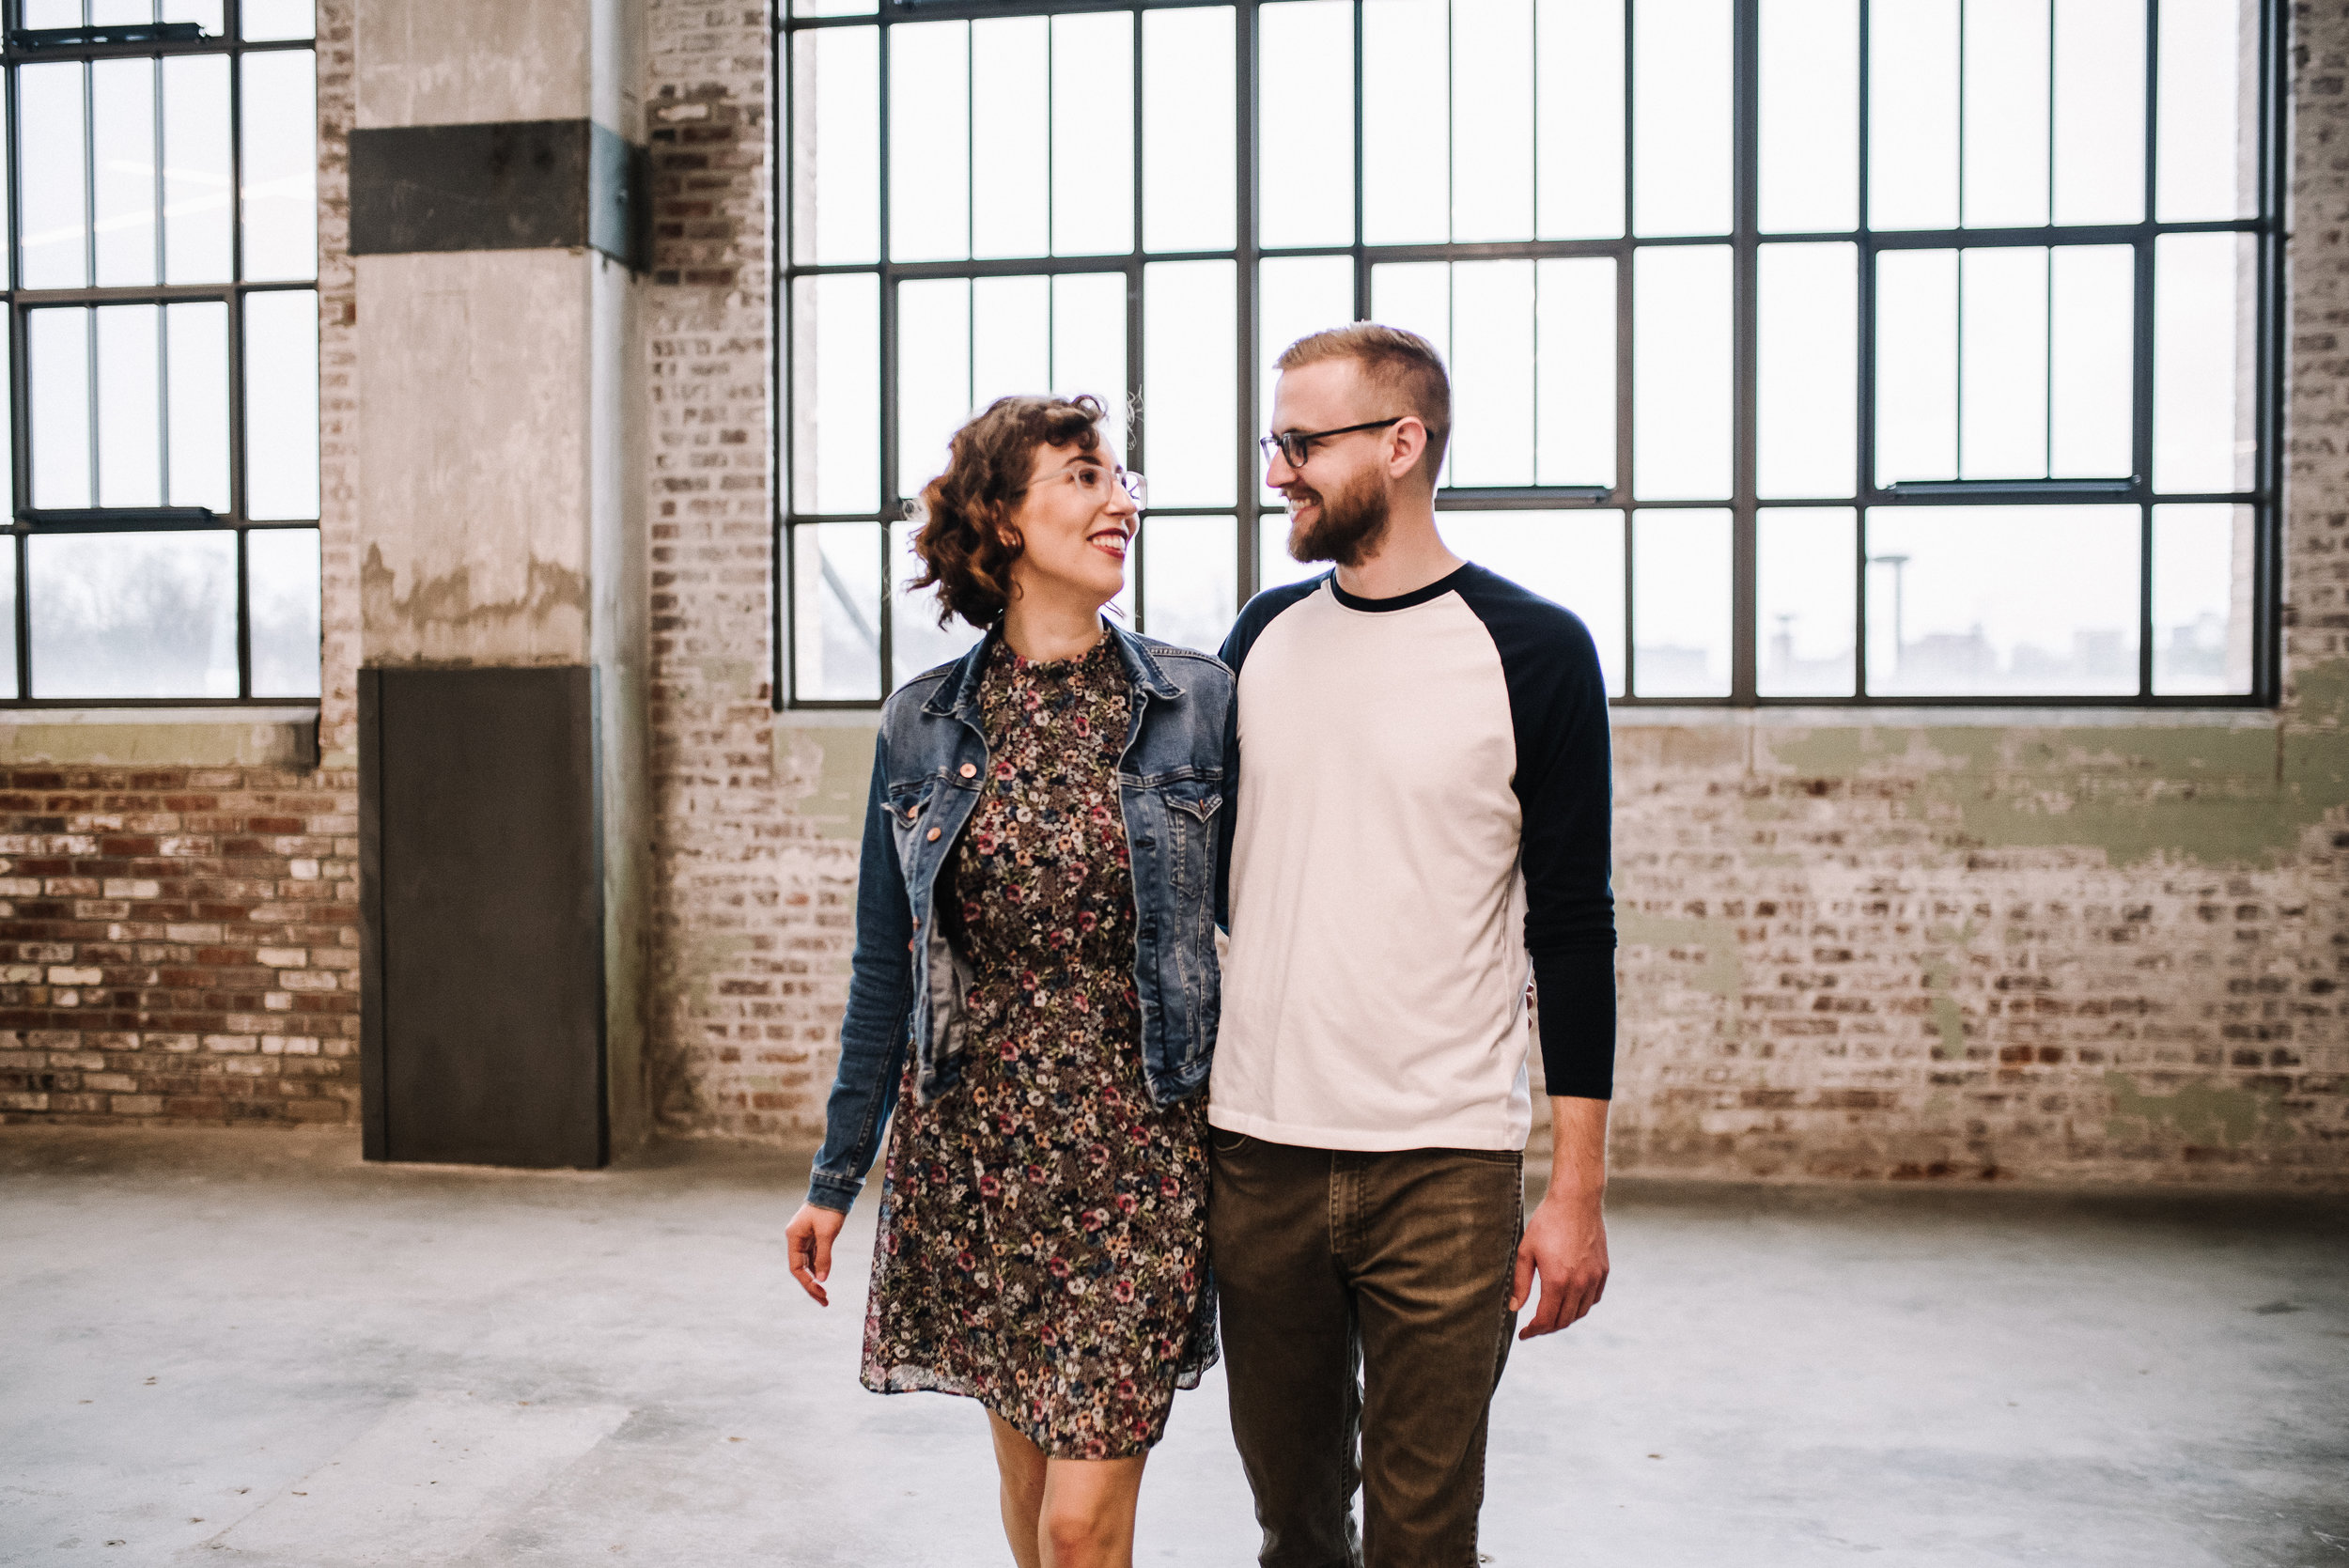 Crosstown-Concourse-Engagement-Session_Angela&Eric-41.jpg